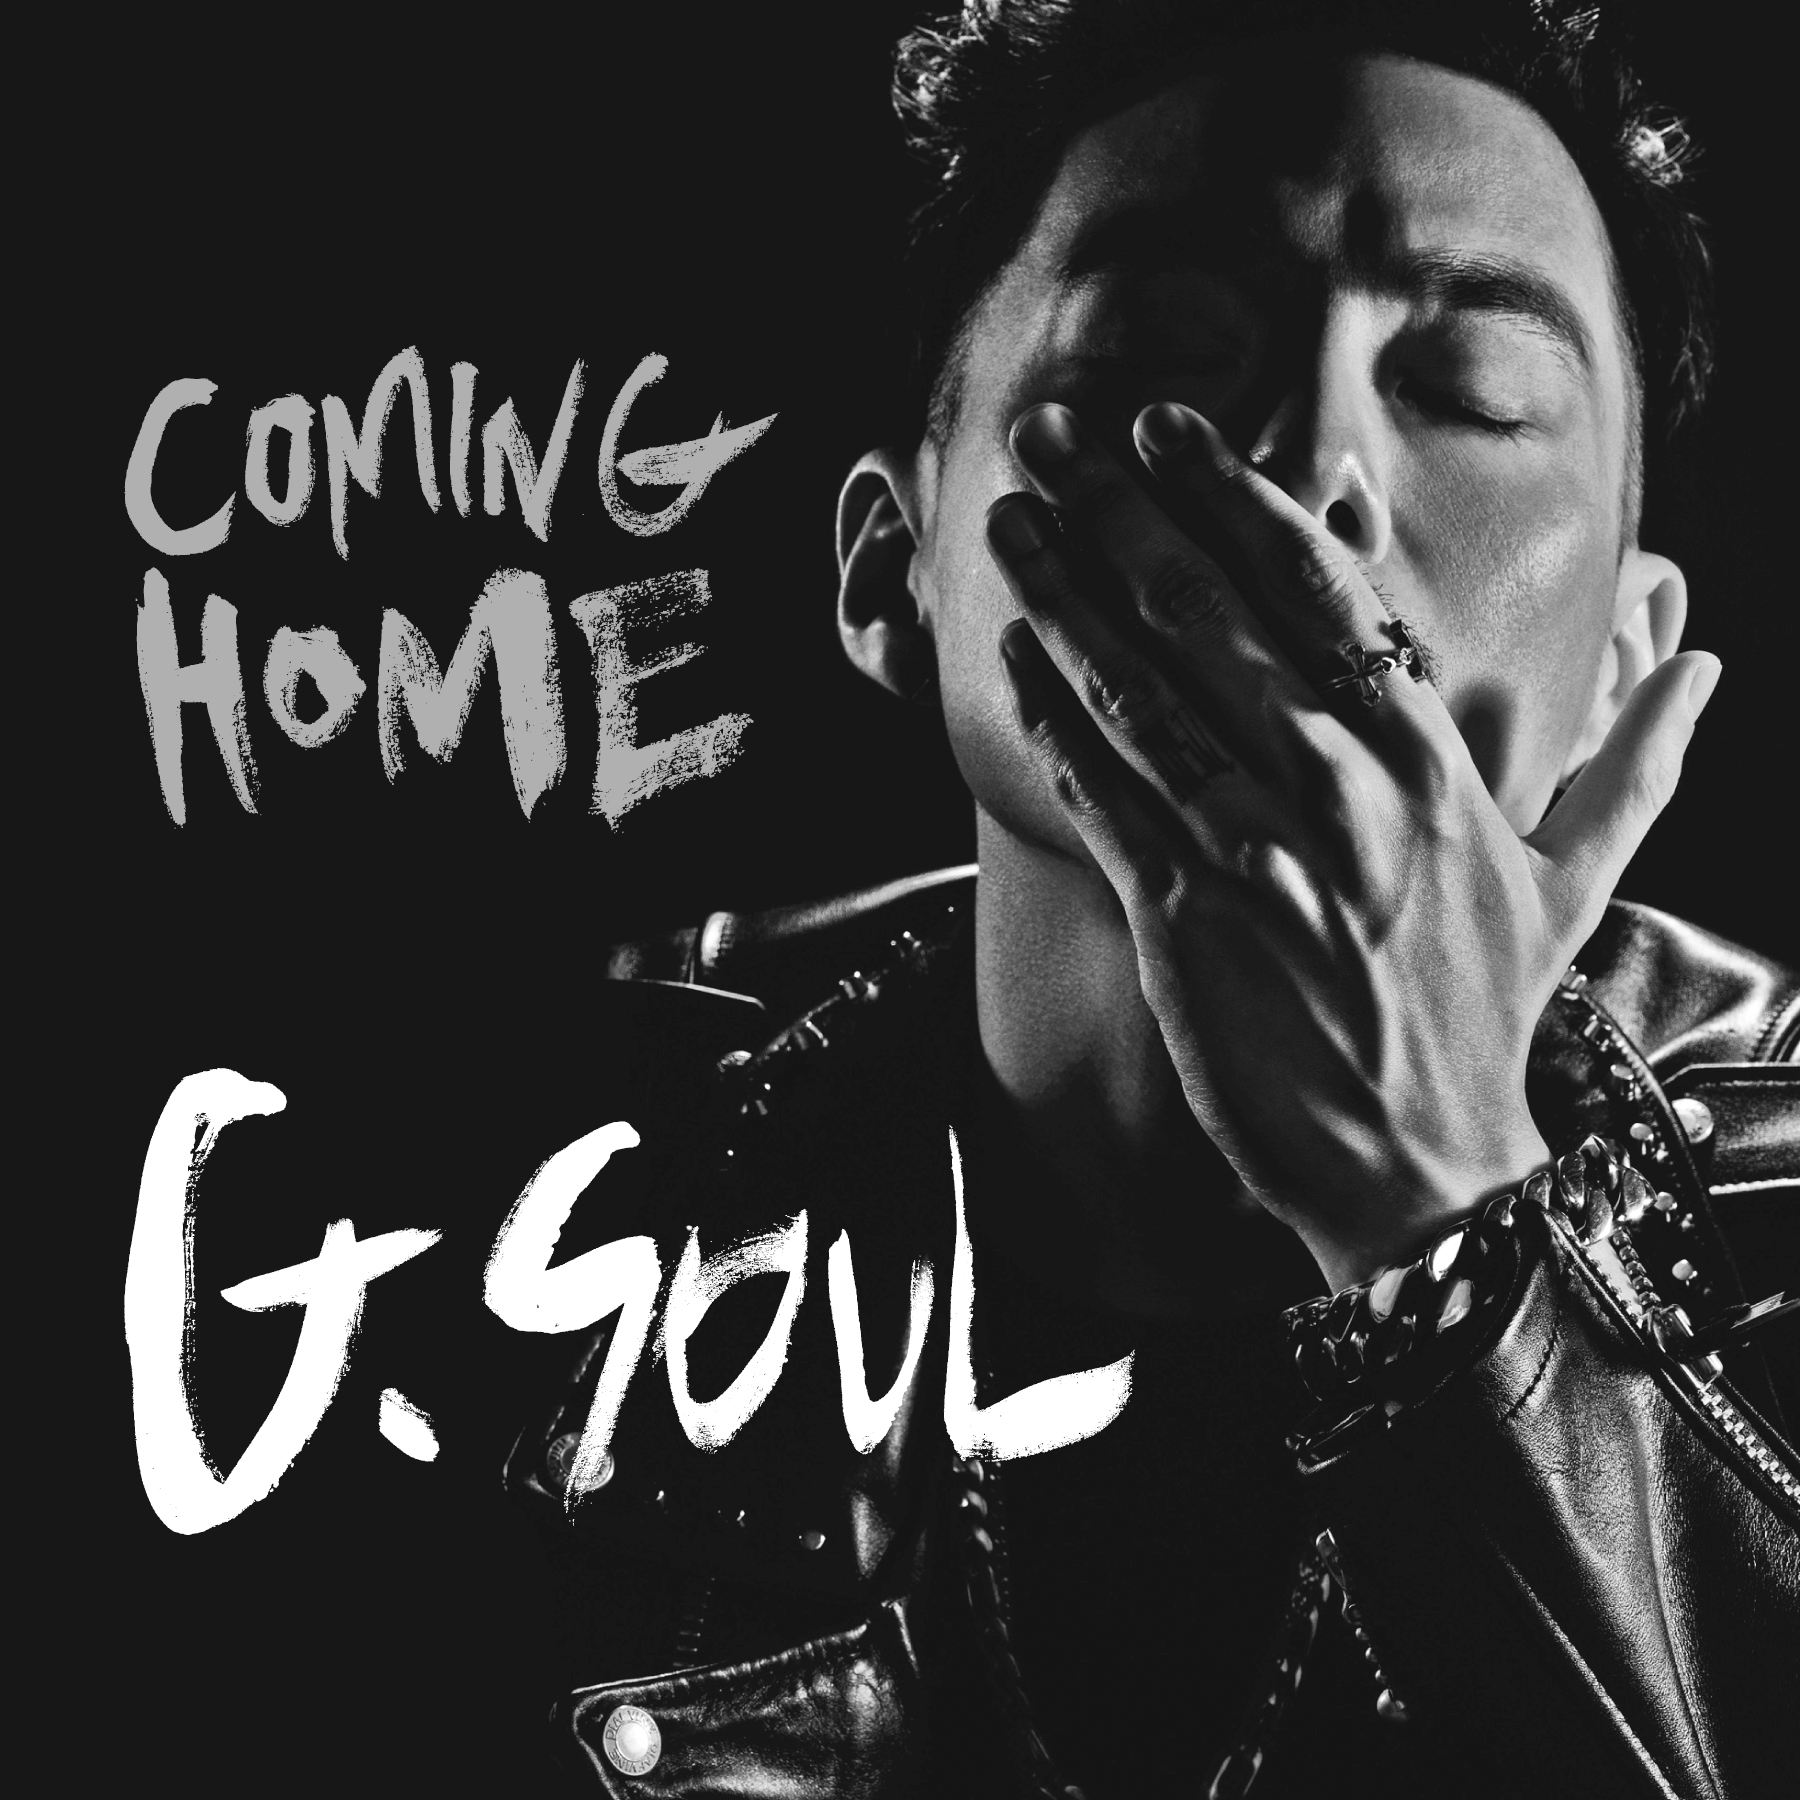 G.Soul - Mini Album Vol.1 [Coming Home]